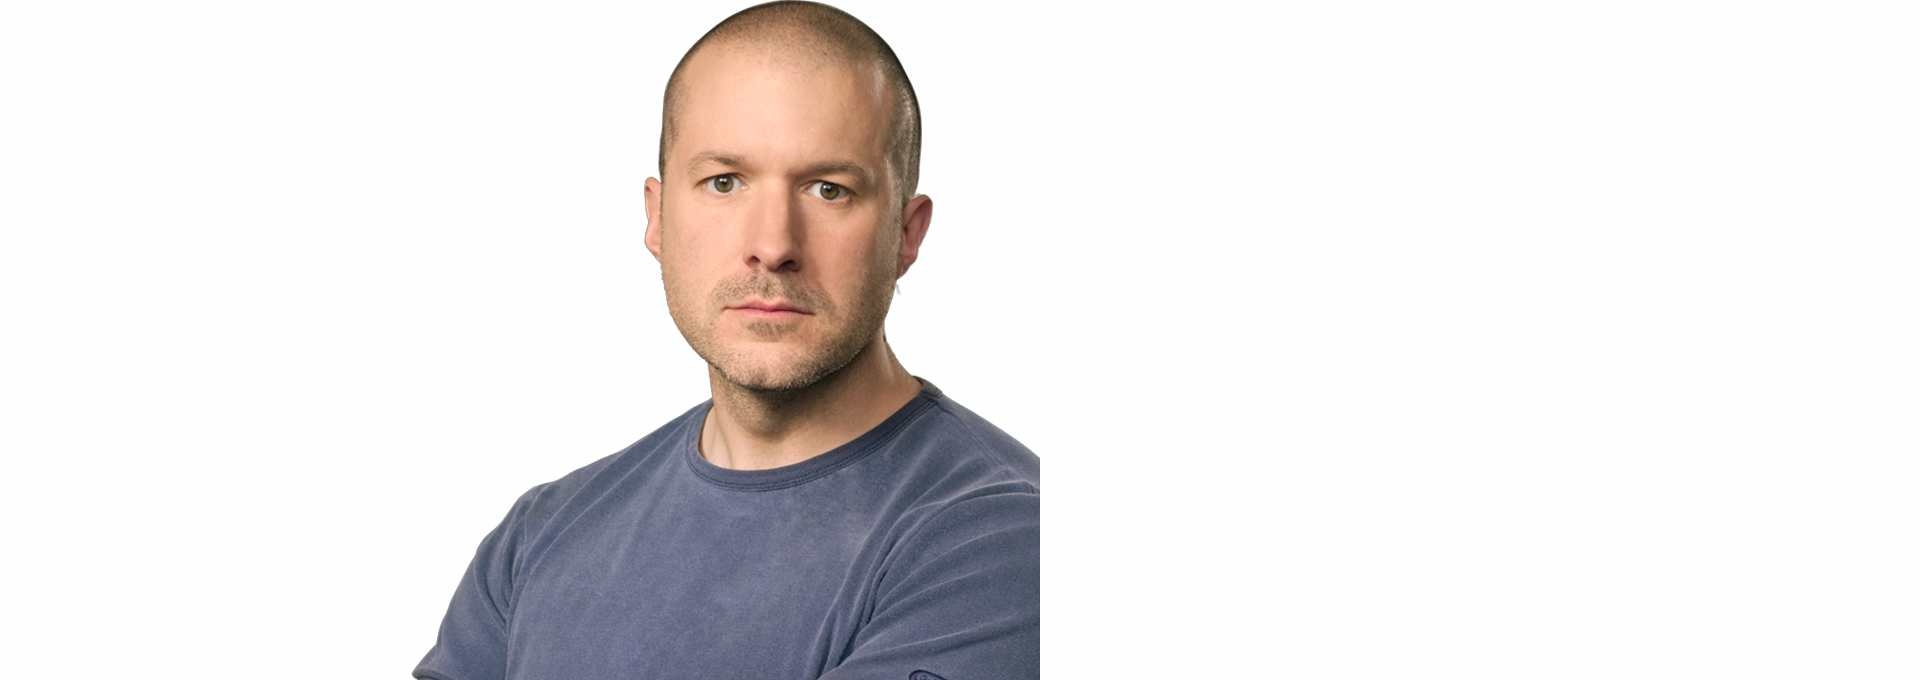 Le processus de design et la philosophie d'Apple selon Jonathan Ive